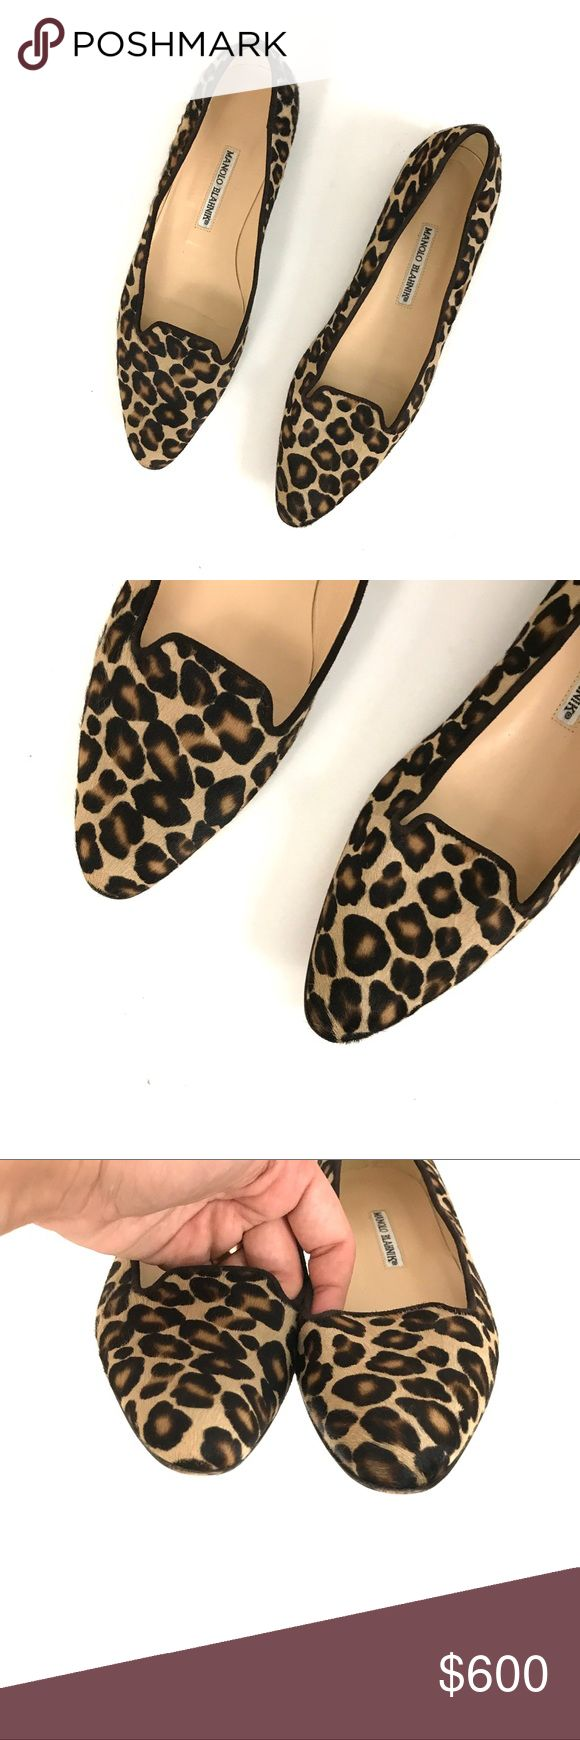 Manolo Blahnik sharif leopard print calf hair flat Gently used. they were worn twice. Size 39. Made in Italy. Only wear to the bottoms and light light wear to the toe edges. 100% AUTHENTIC. Purchased at neimen Marcus! Retail $725 flats/loafers. Cheetah/leopard Manolo Blahnik Shoes Flats & Loafers